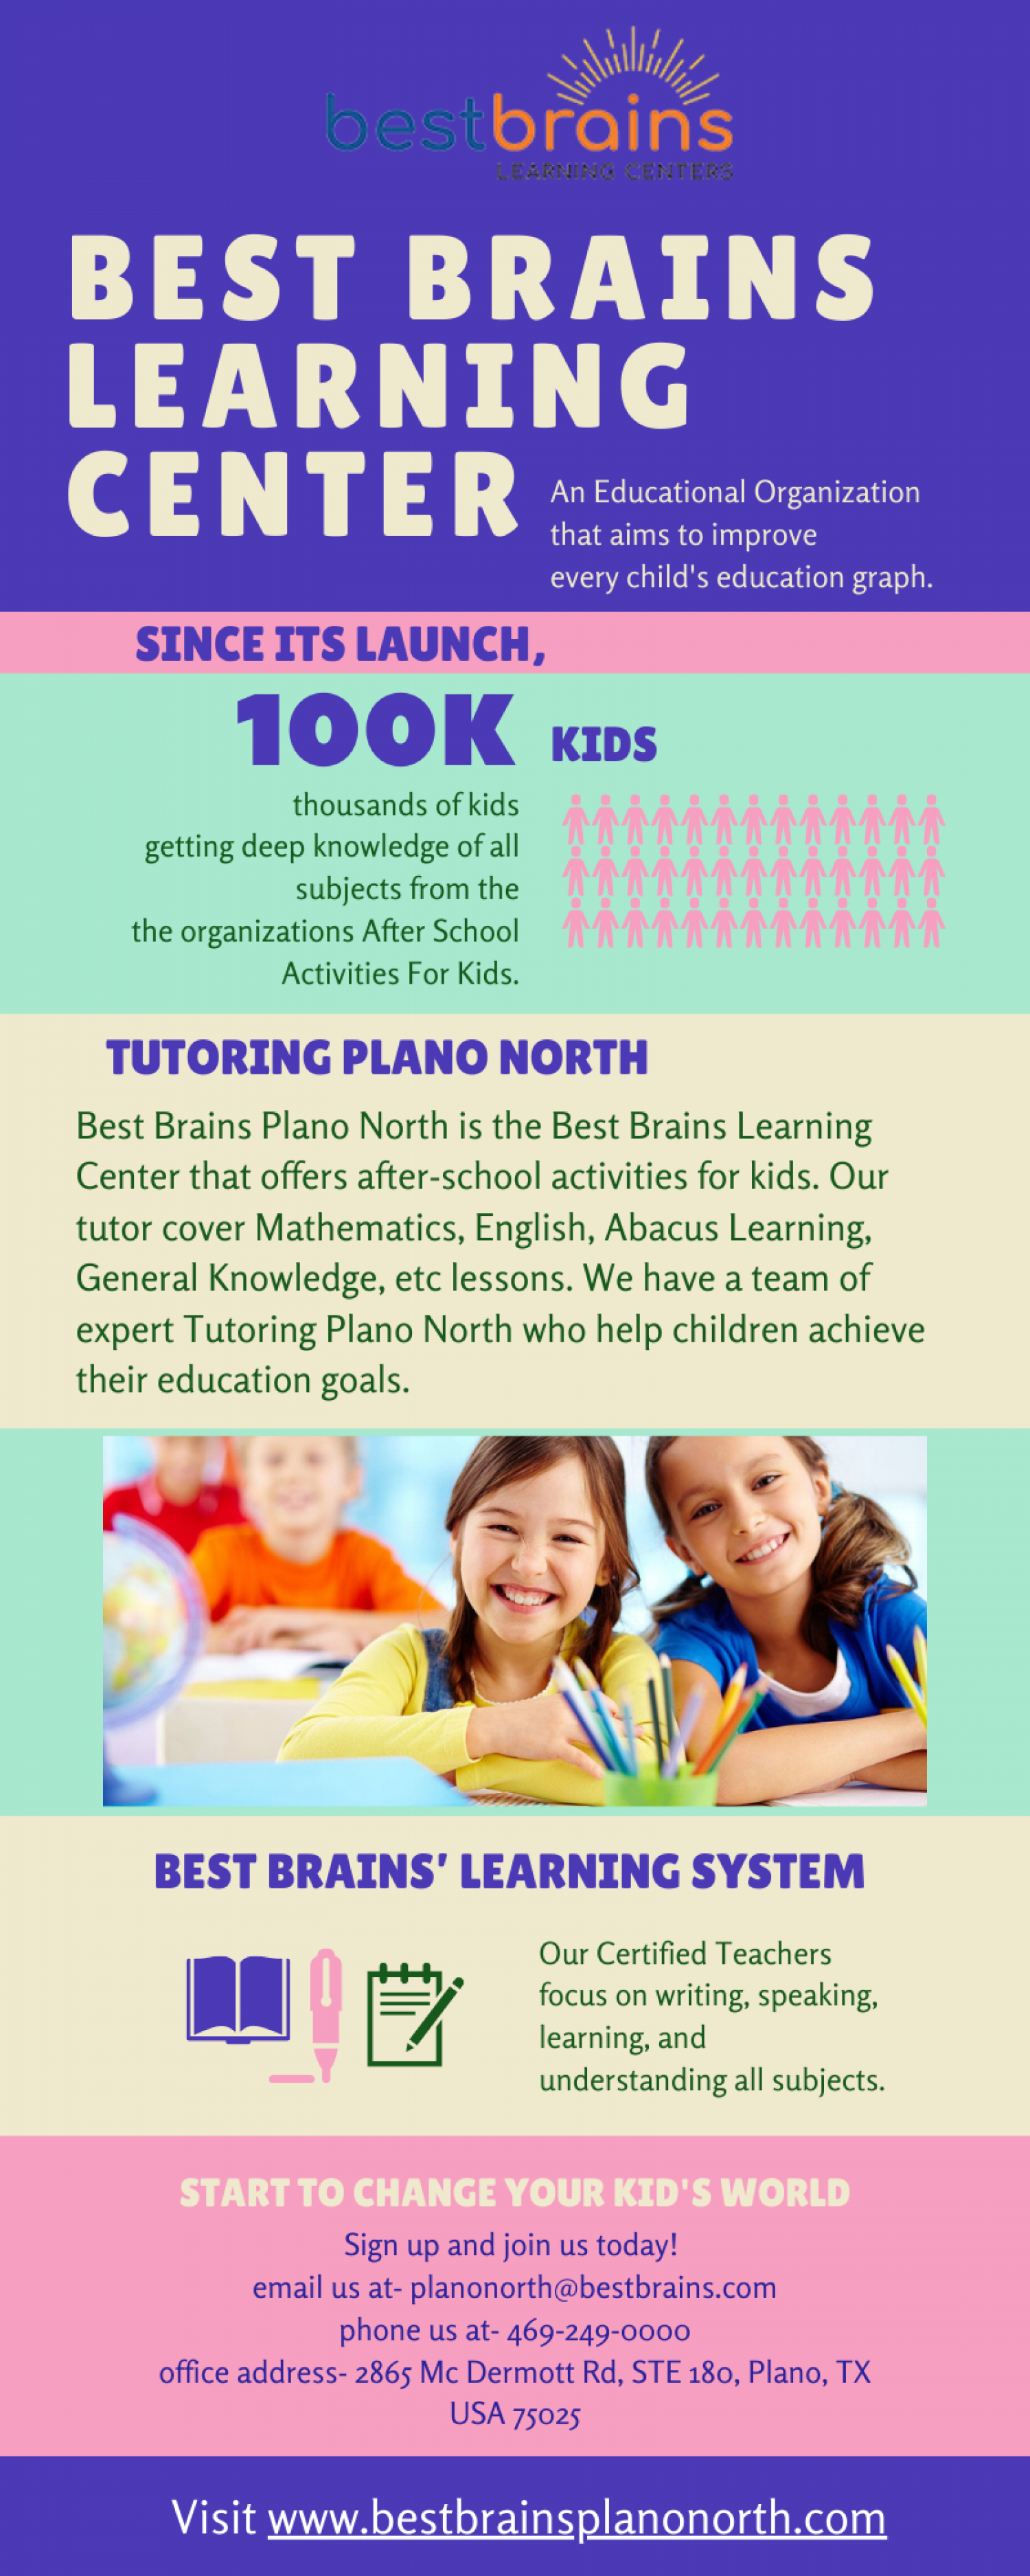 Best Brains Learning Center Infographic